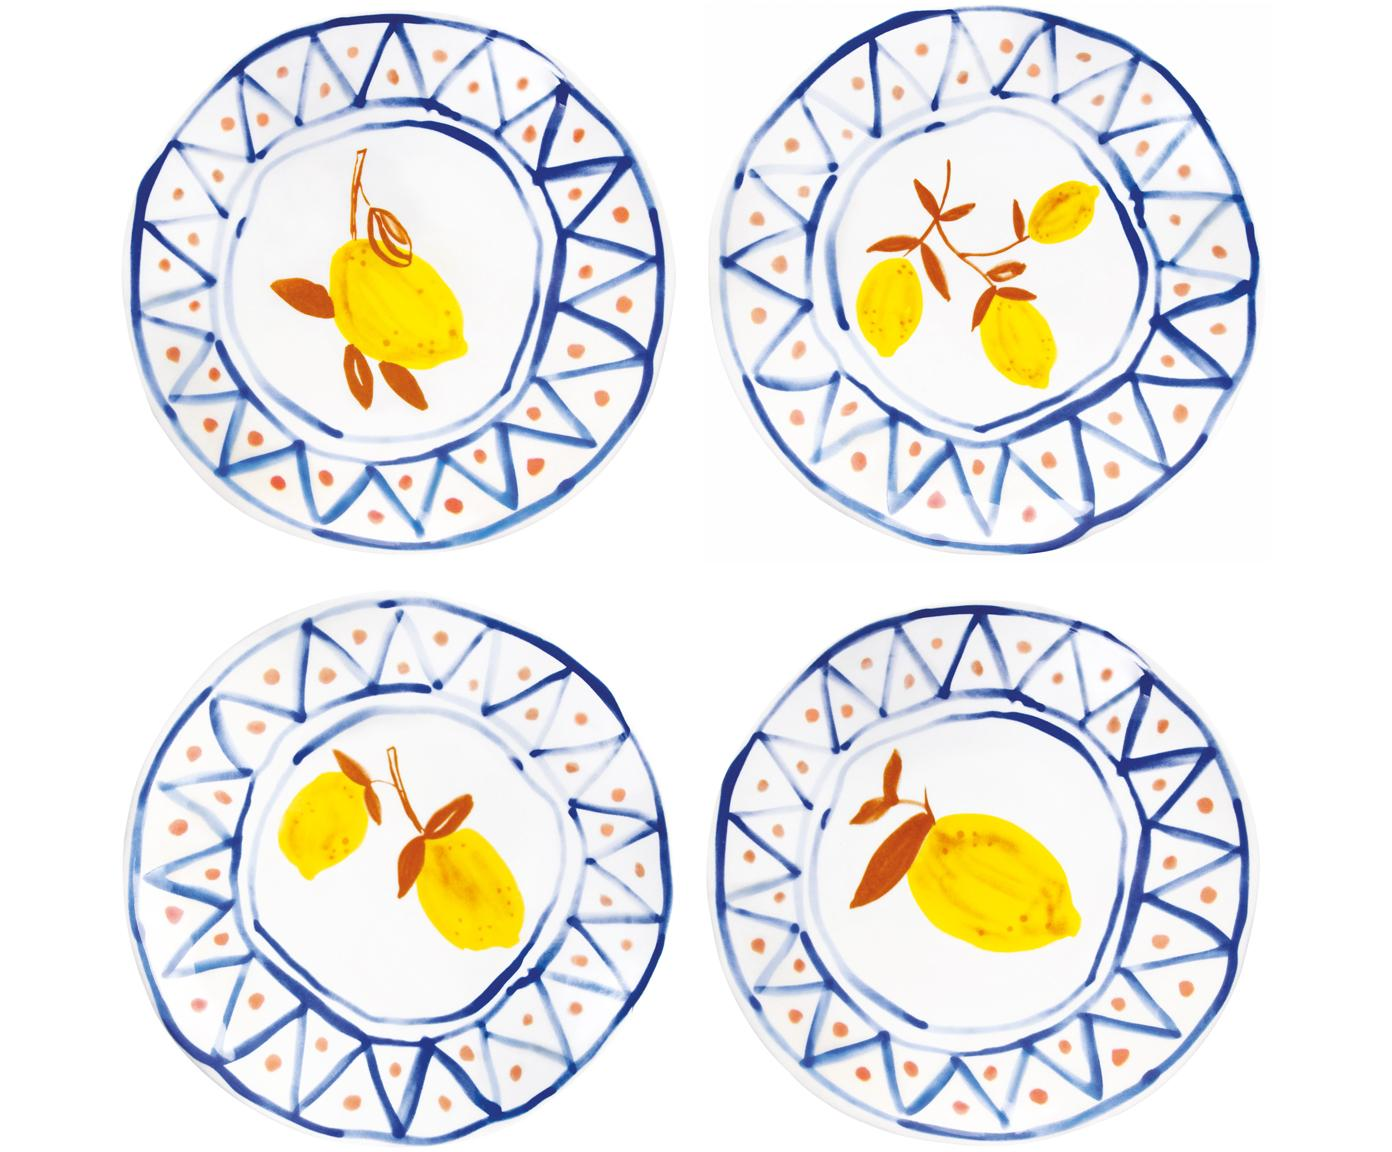 Brotteller-Set Lemon Moroccan, 4-tlg., Steingut, Weiß, Blau, Orange, Gelb, Ø 16 cm